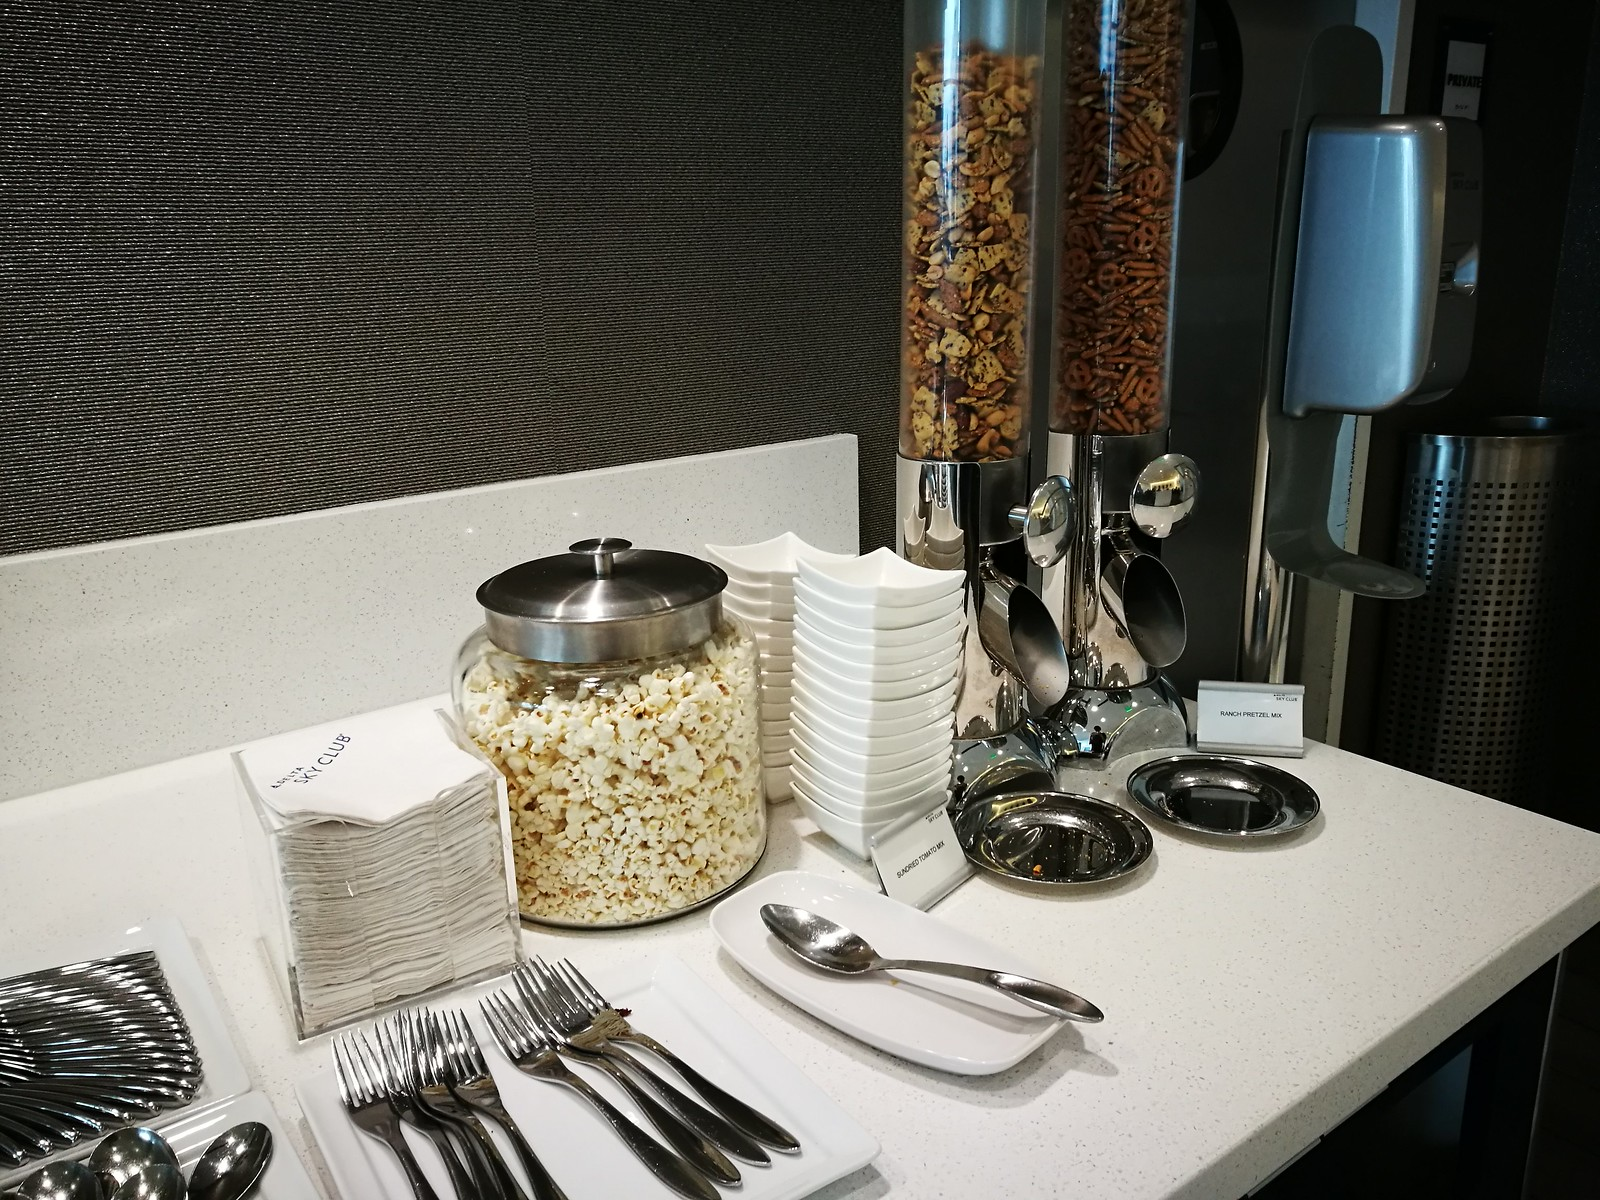 Mixed nuts and popcorn